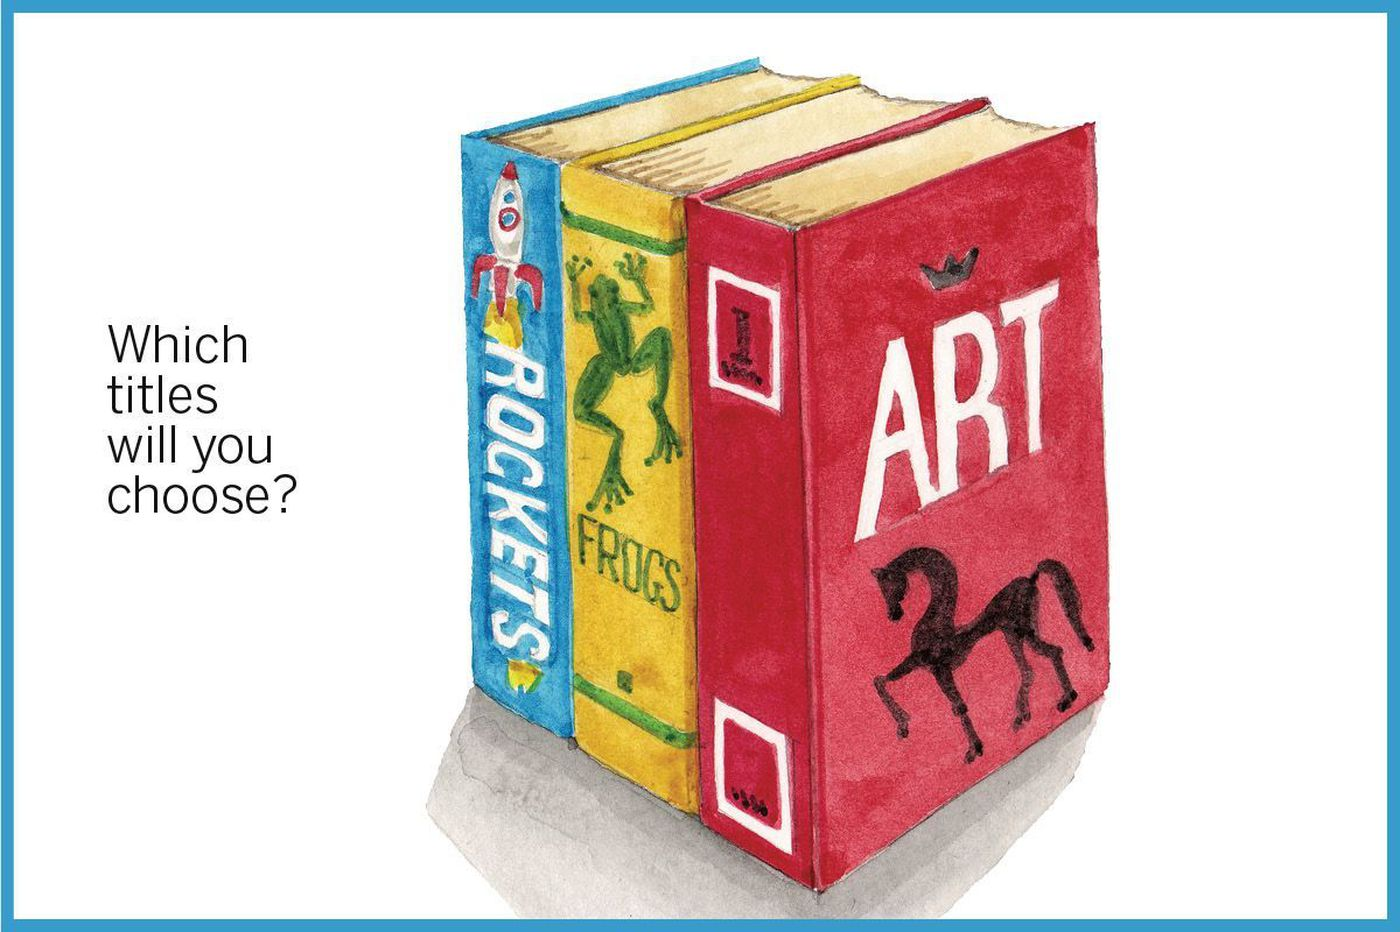 Hey, kids: Draw these books in 2-point perspective for a chance to see your artwork published